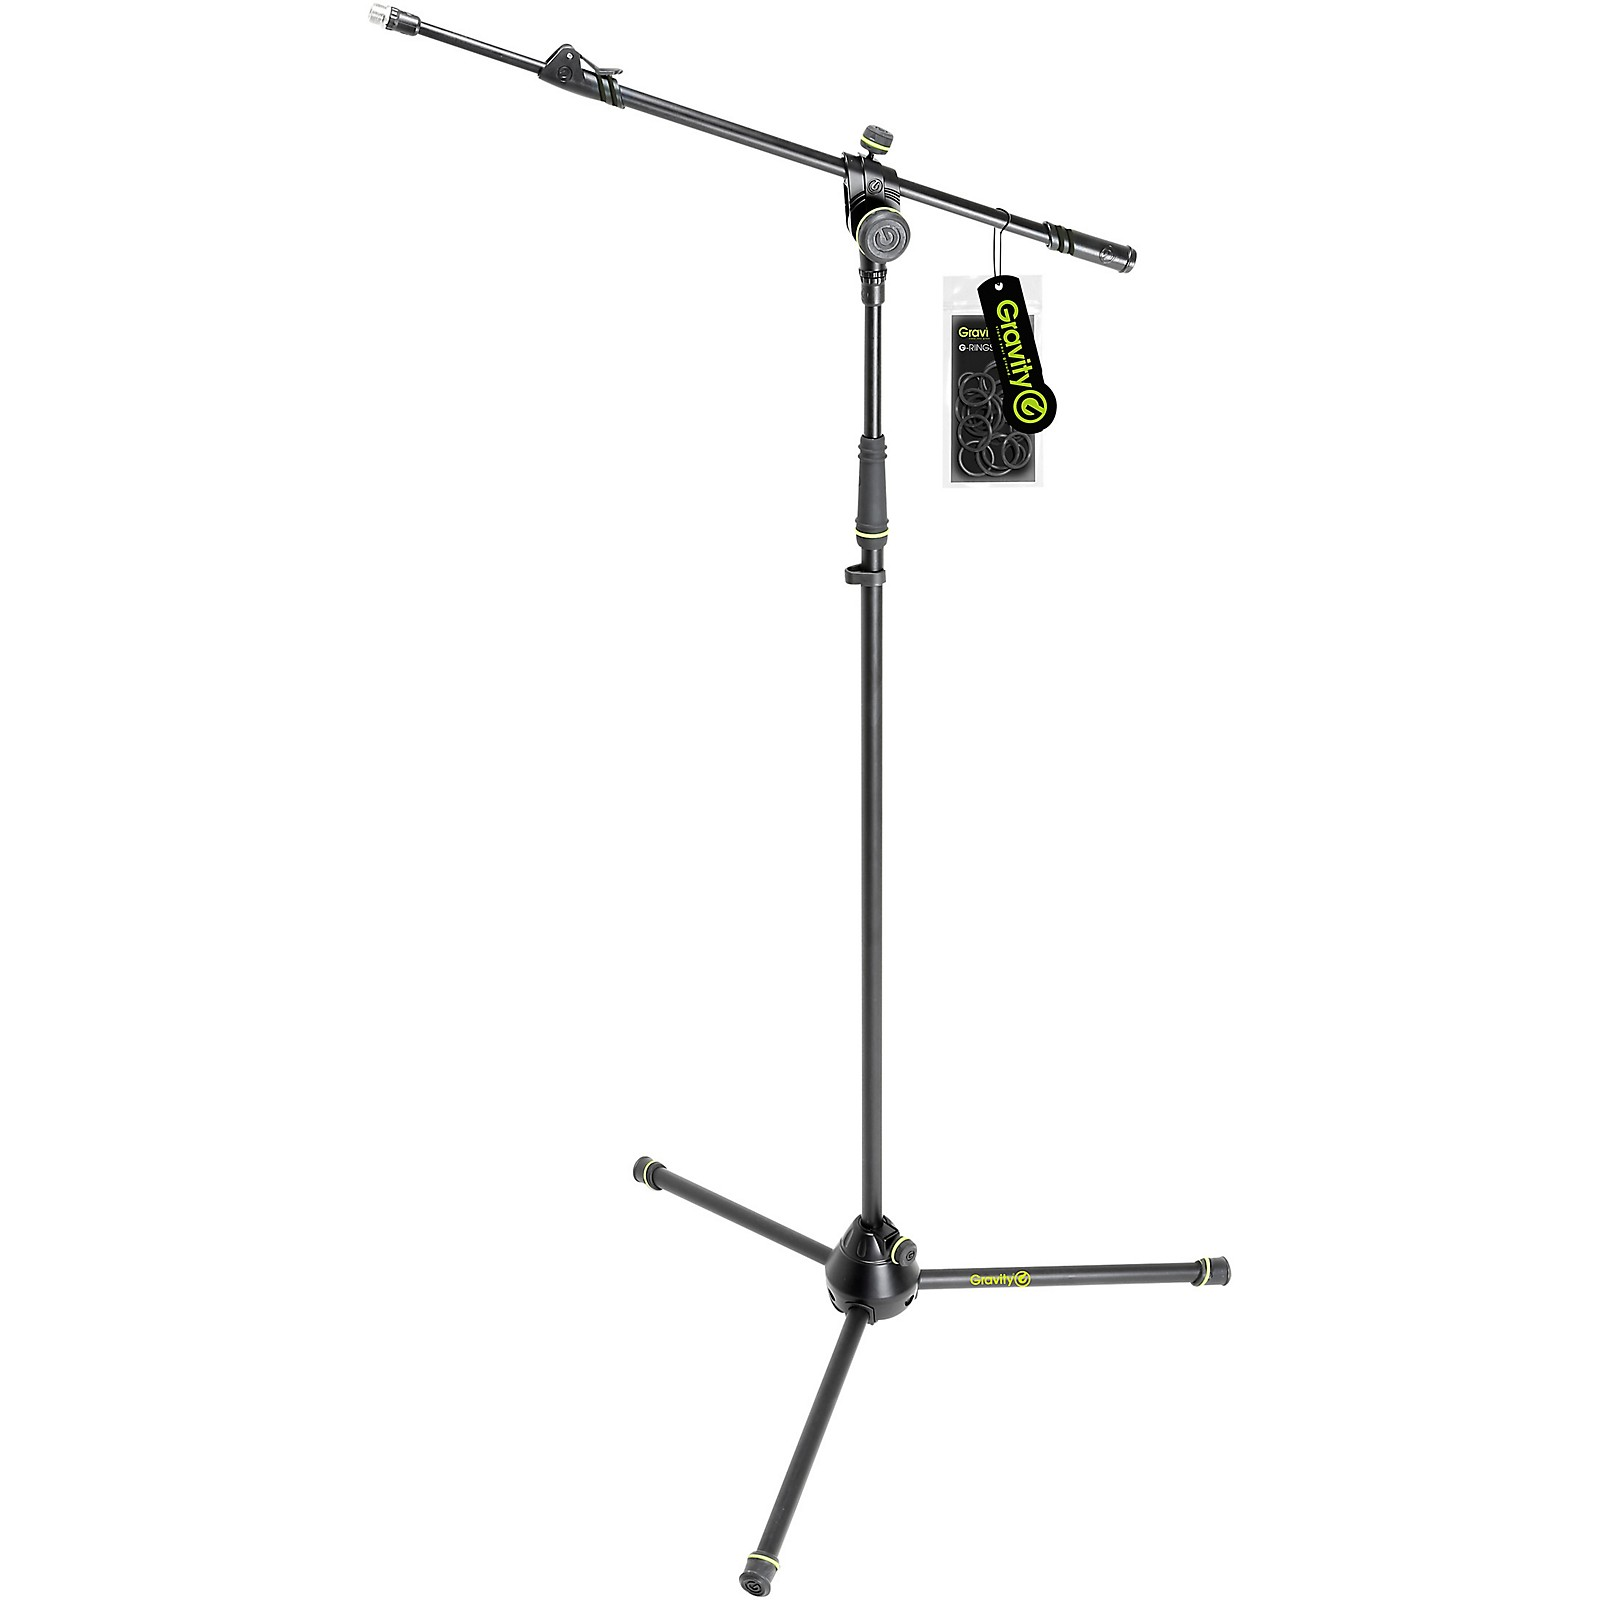 Gravity Stands Microphone Stand With Folding Tripod Base And 2-Point Adjustment Telescoping Boom